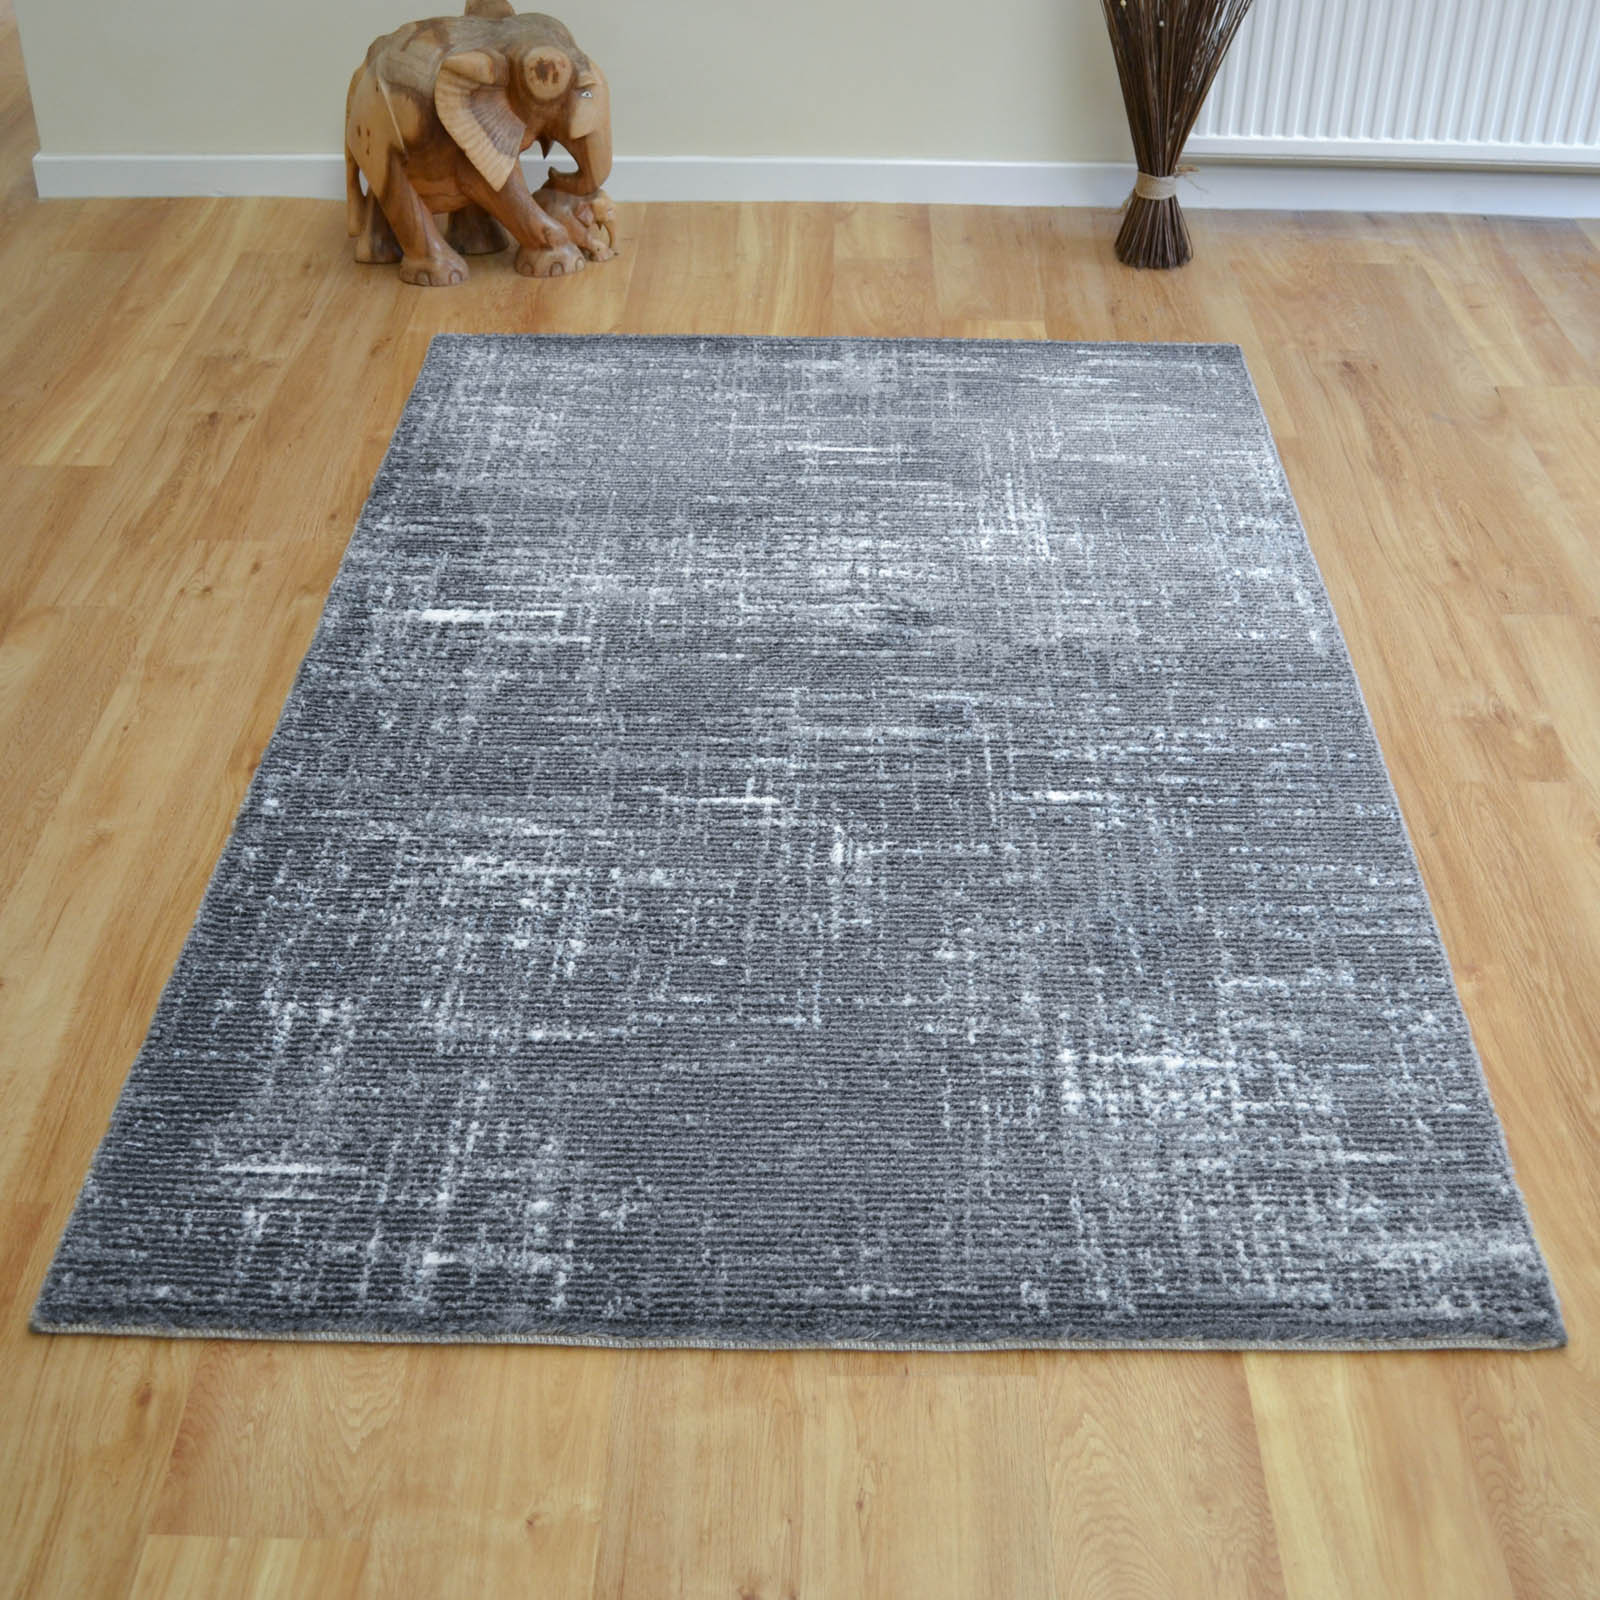 Chelsea Rugs 2228 940 in Grey